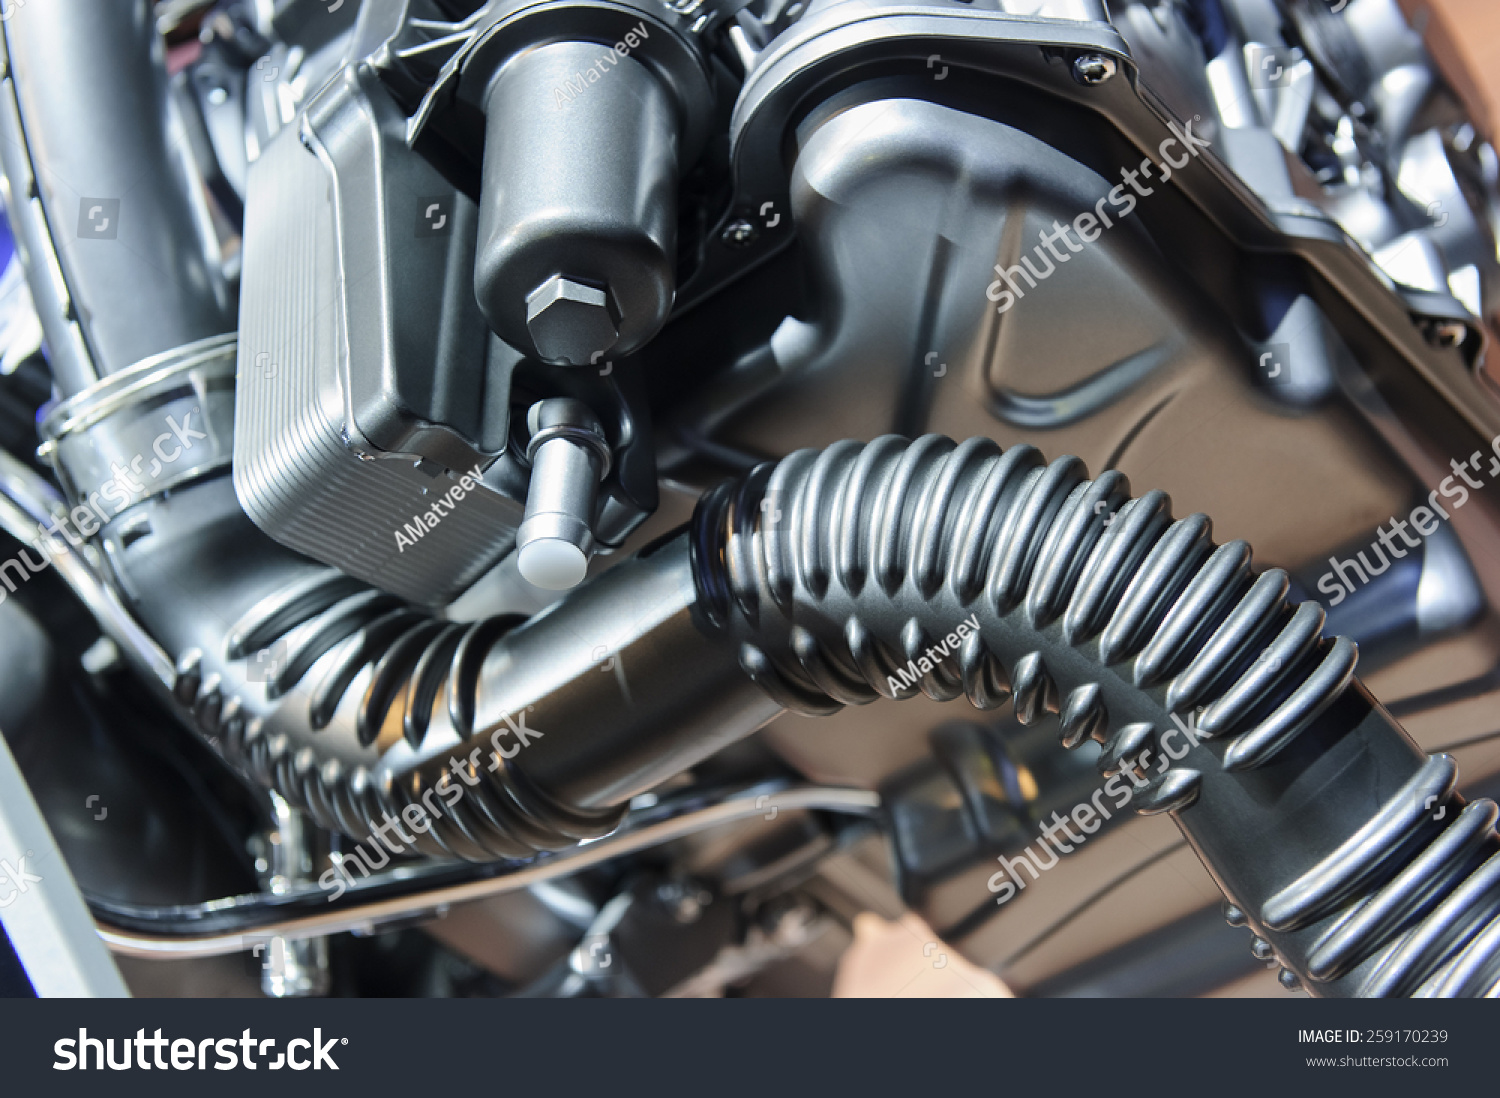 Car Engine Concept Modern Automobile Motor Stock Photo (Safe to Use ...